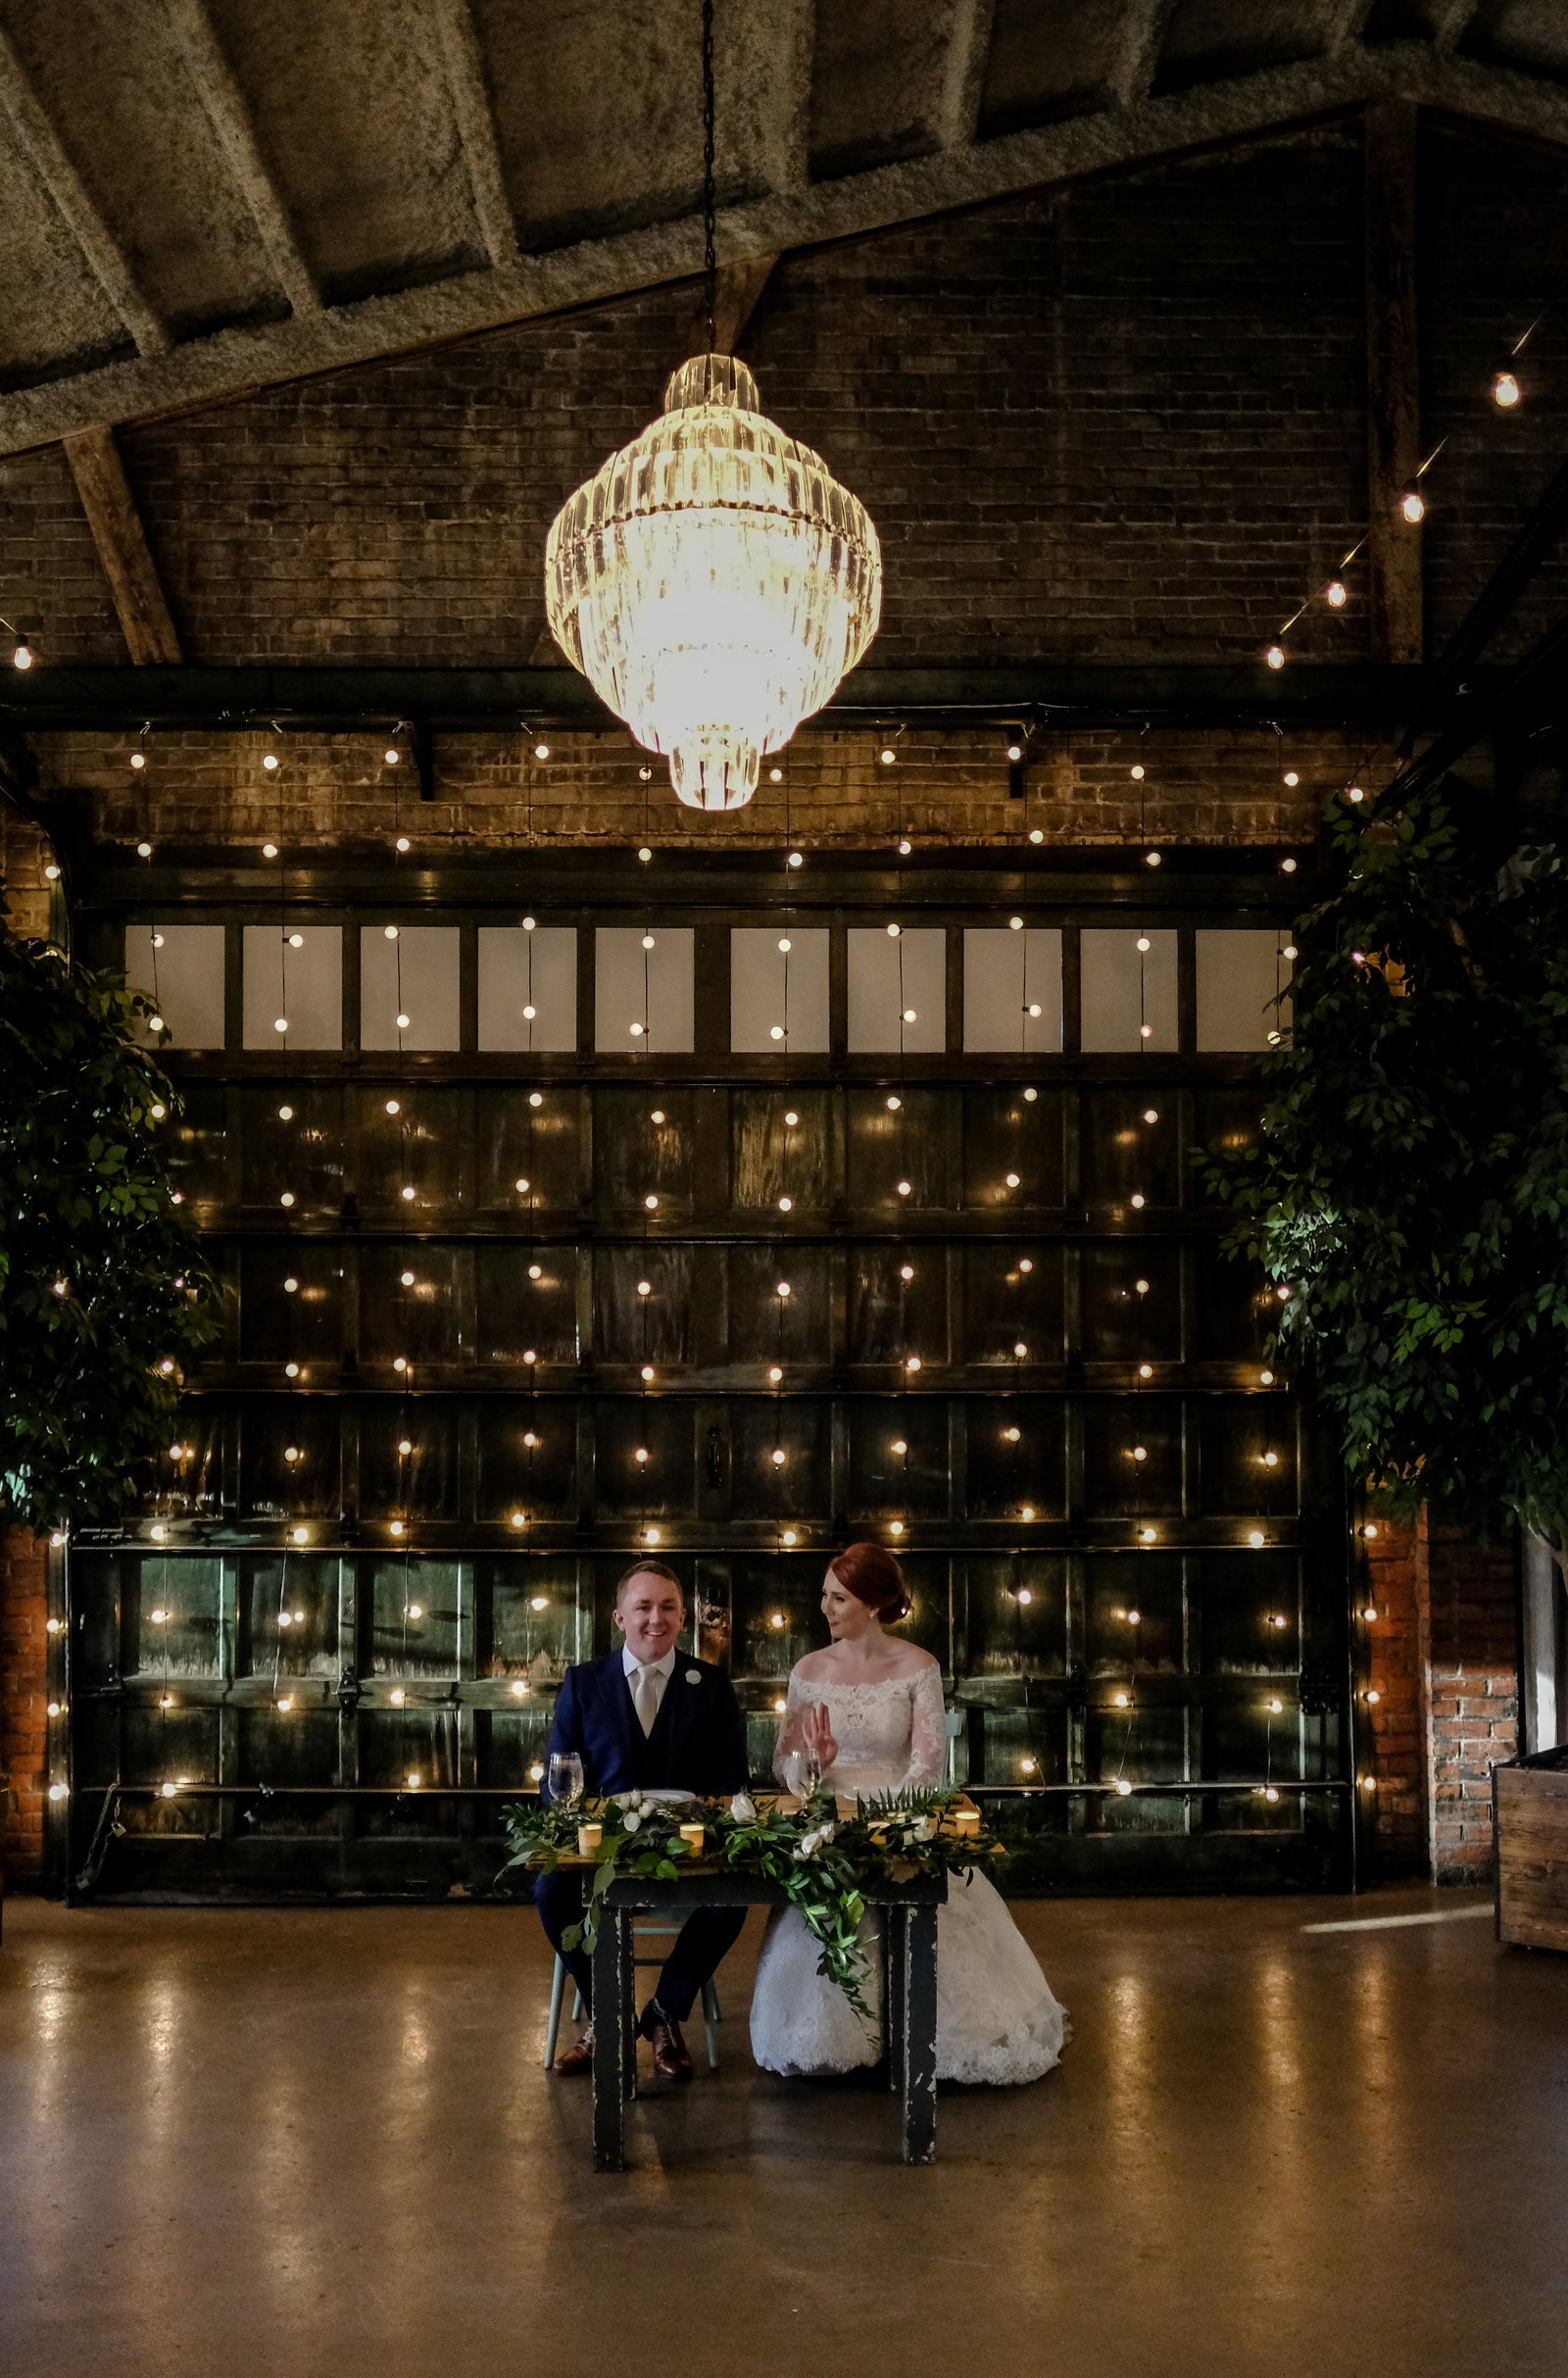 Bobbi Brinkman Photography, Soho South Cafe Wedding